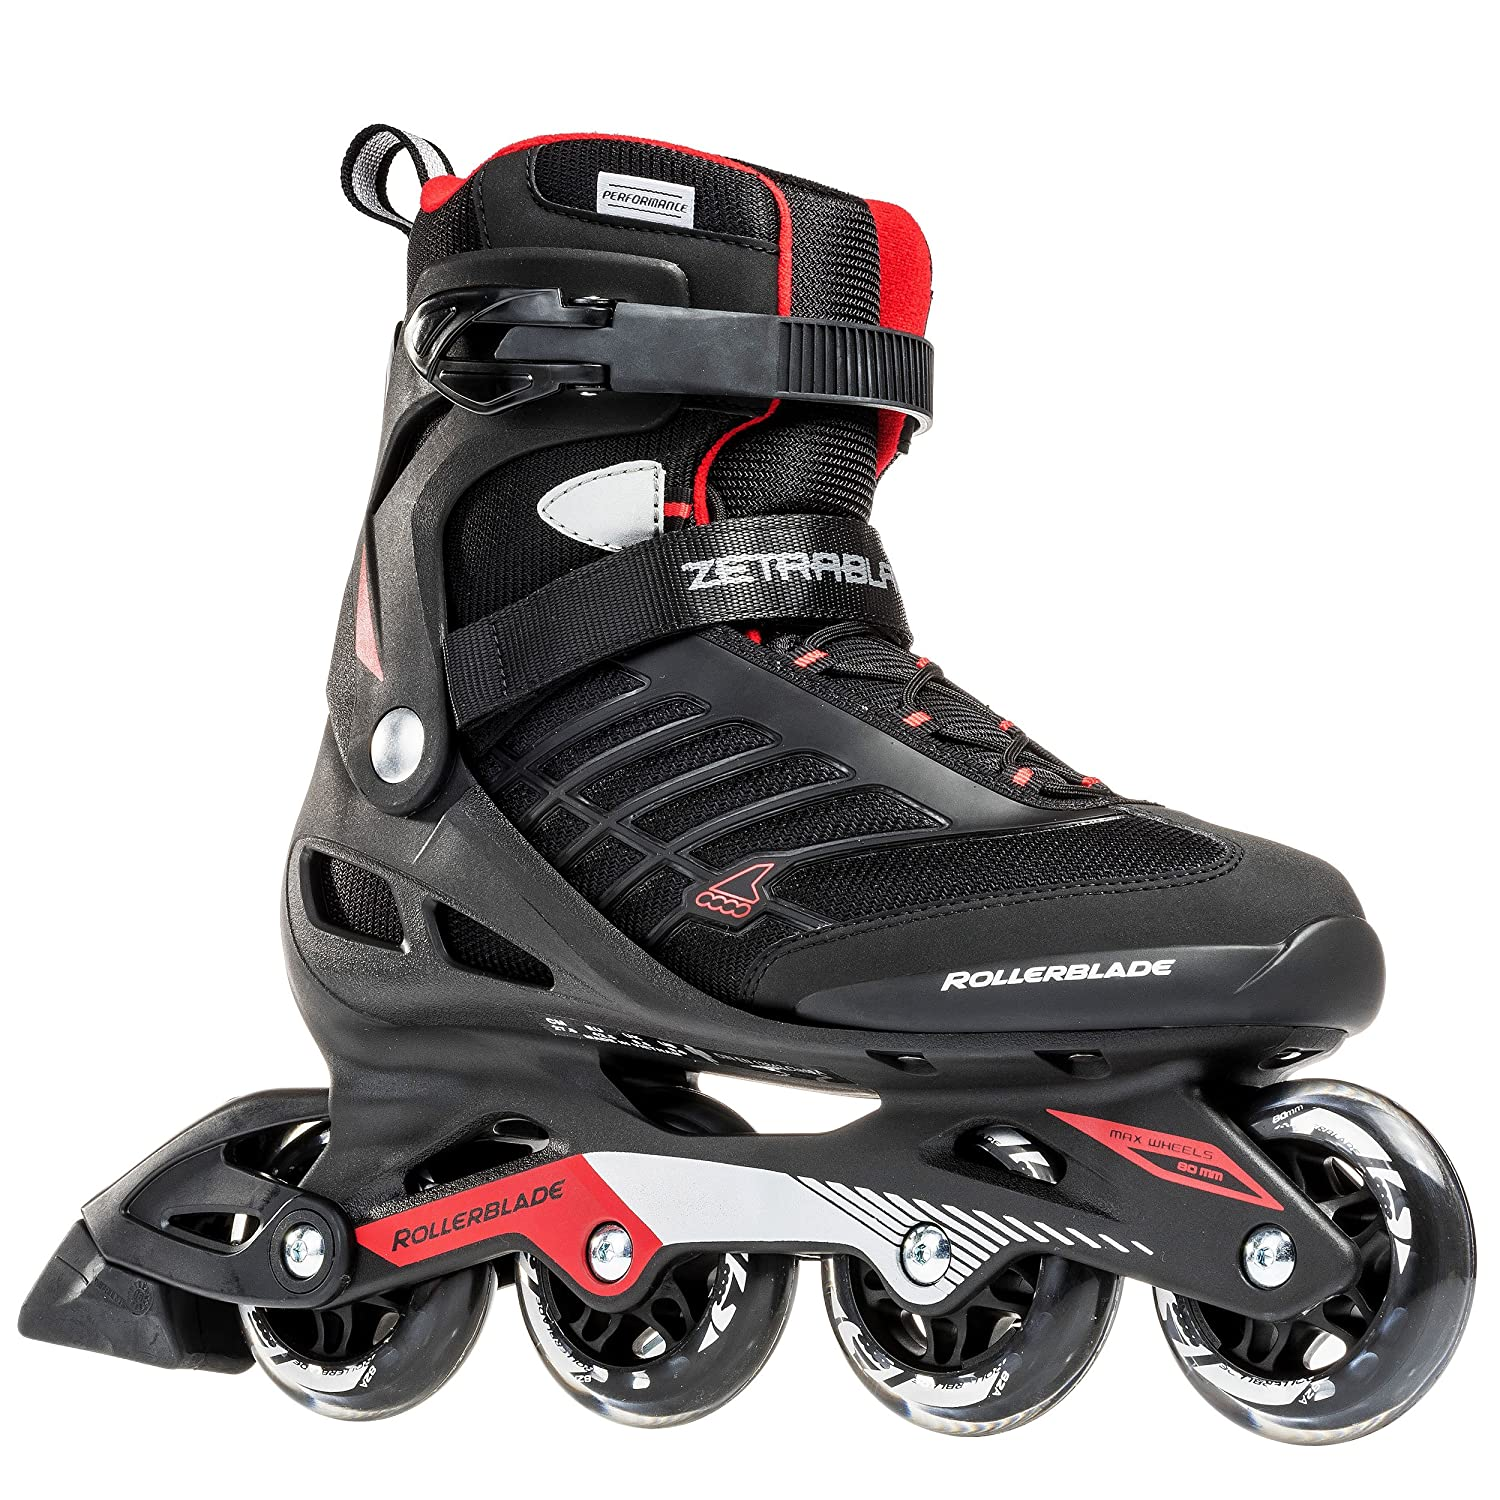 Rollerblade Zetrablade Men s Adult Fitness Inline Skate, Black and Red, Performance Inline Skates